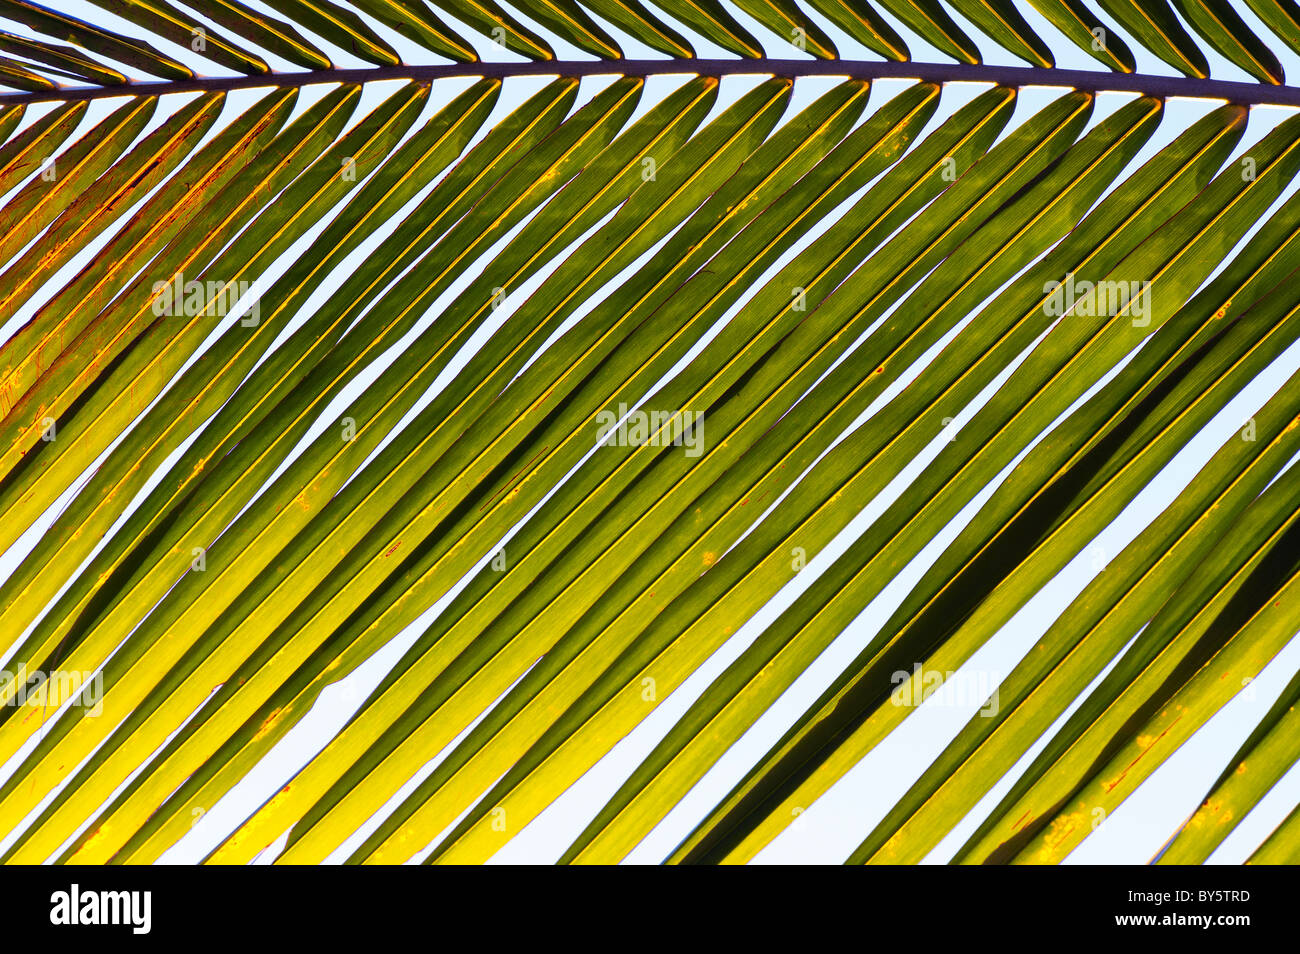 Coconut palm tree frond pattern. India - Stock Image